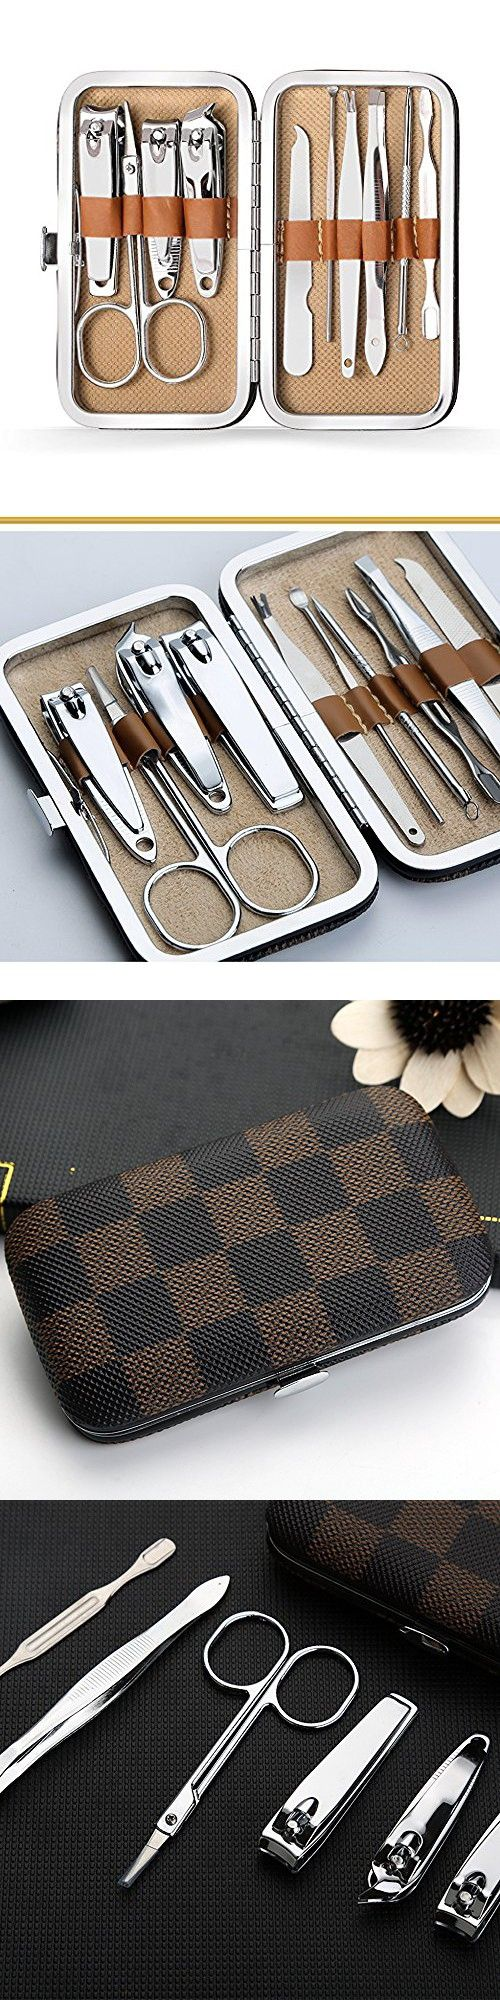 Nail Clipper Set 10 in 1 Nail file Swing Out Nail Cleaner / File ...